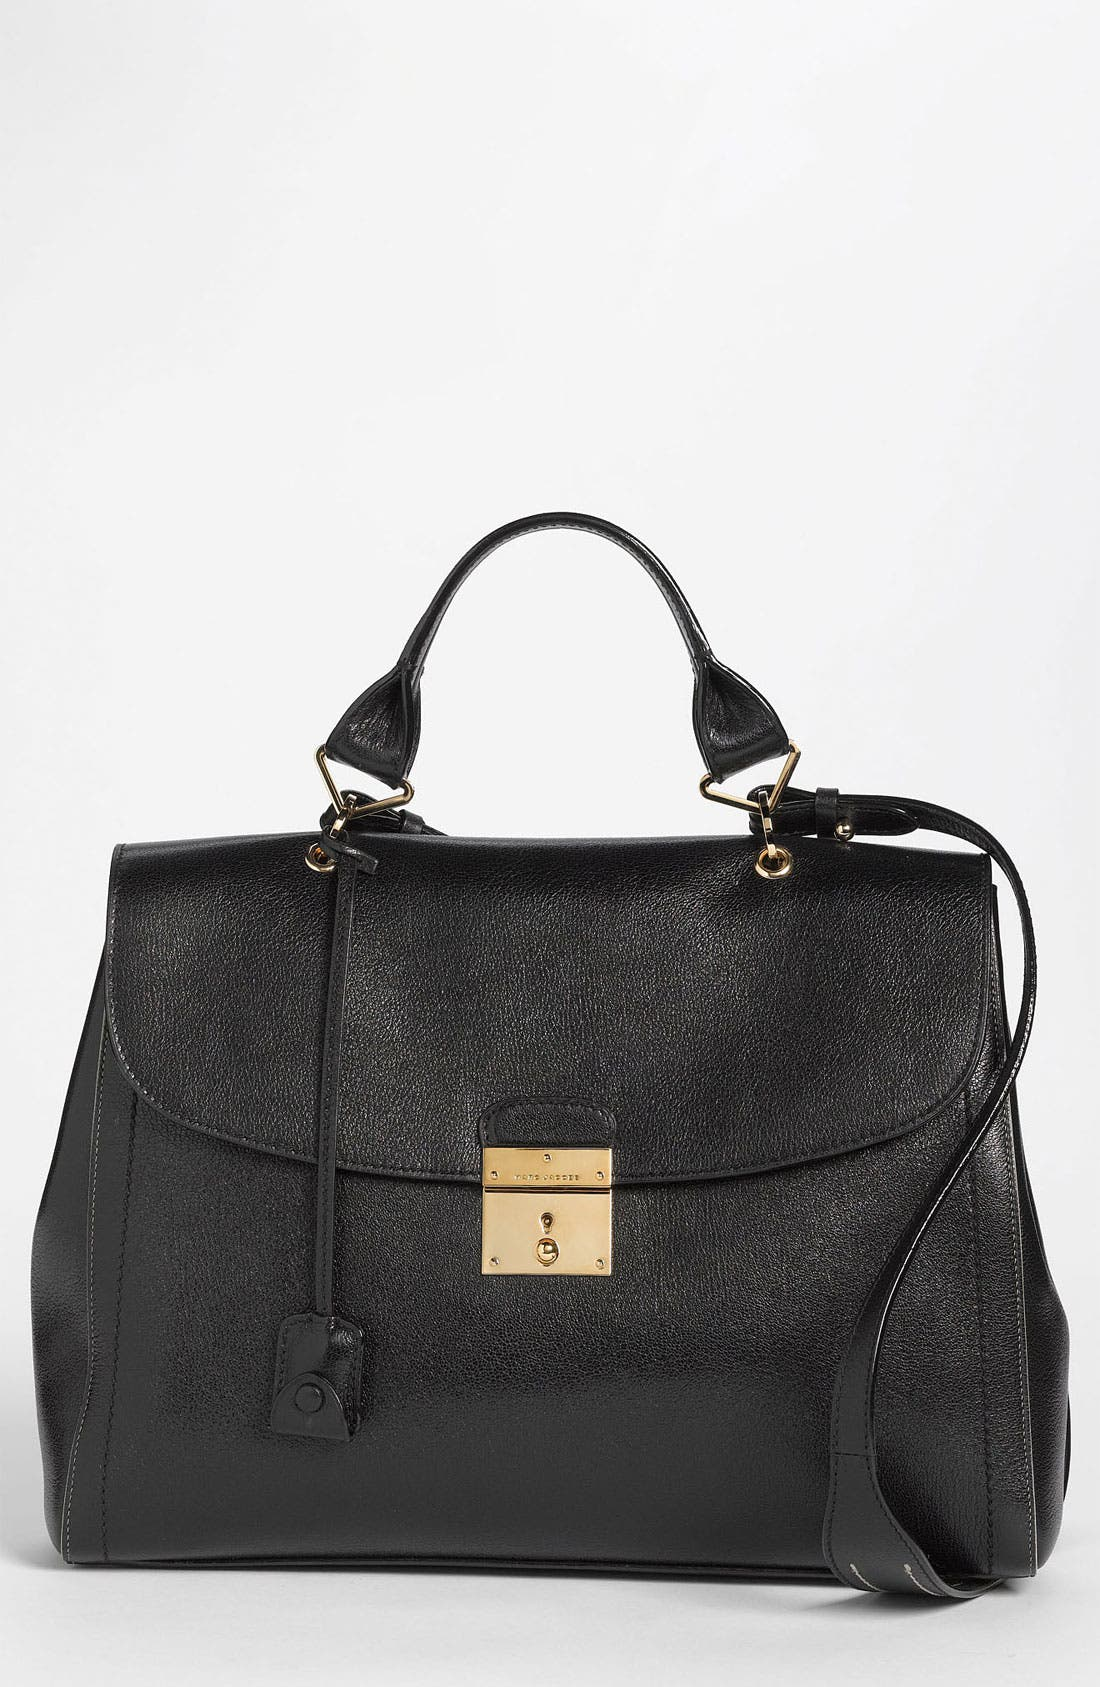 Main Image - MARC JACOBS '1984' Leather Satchel